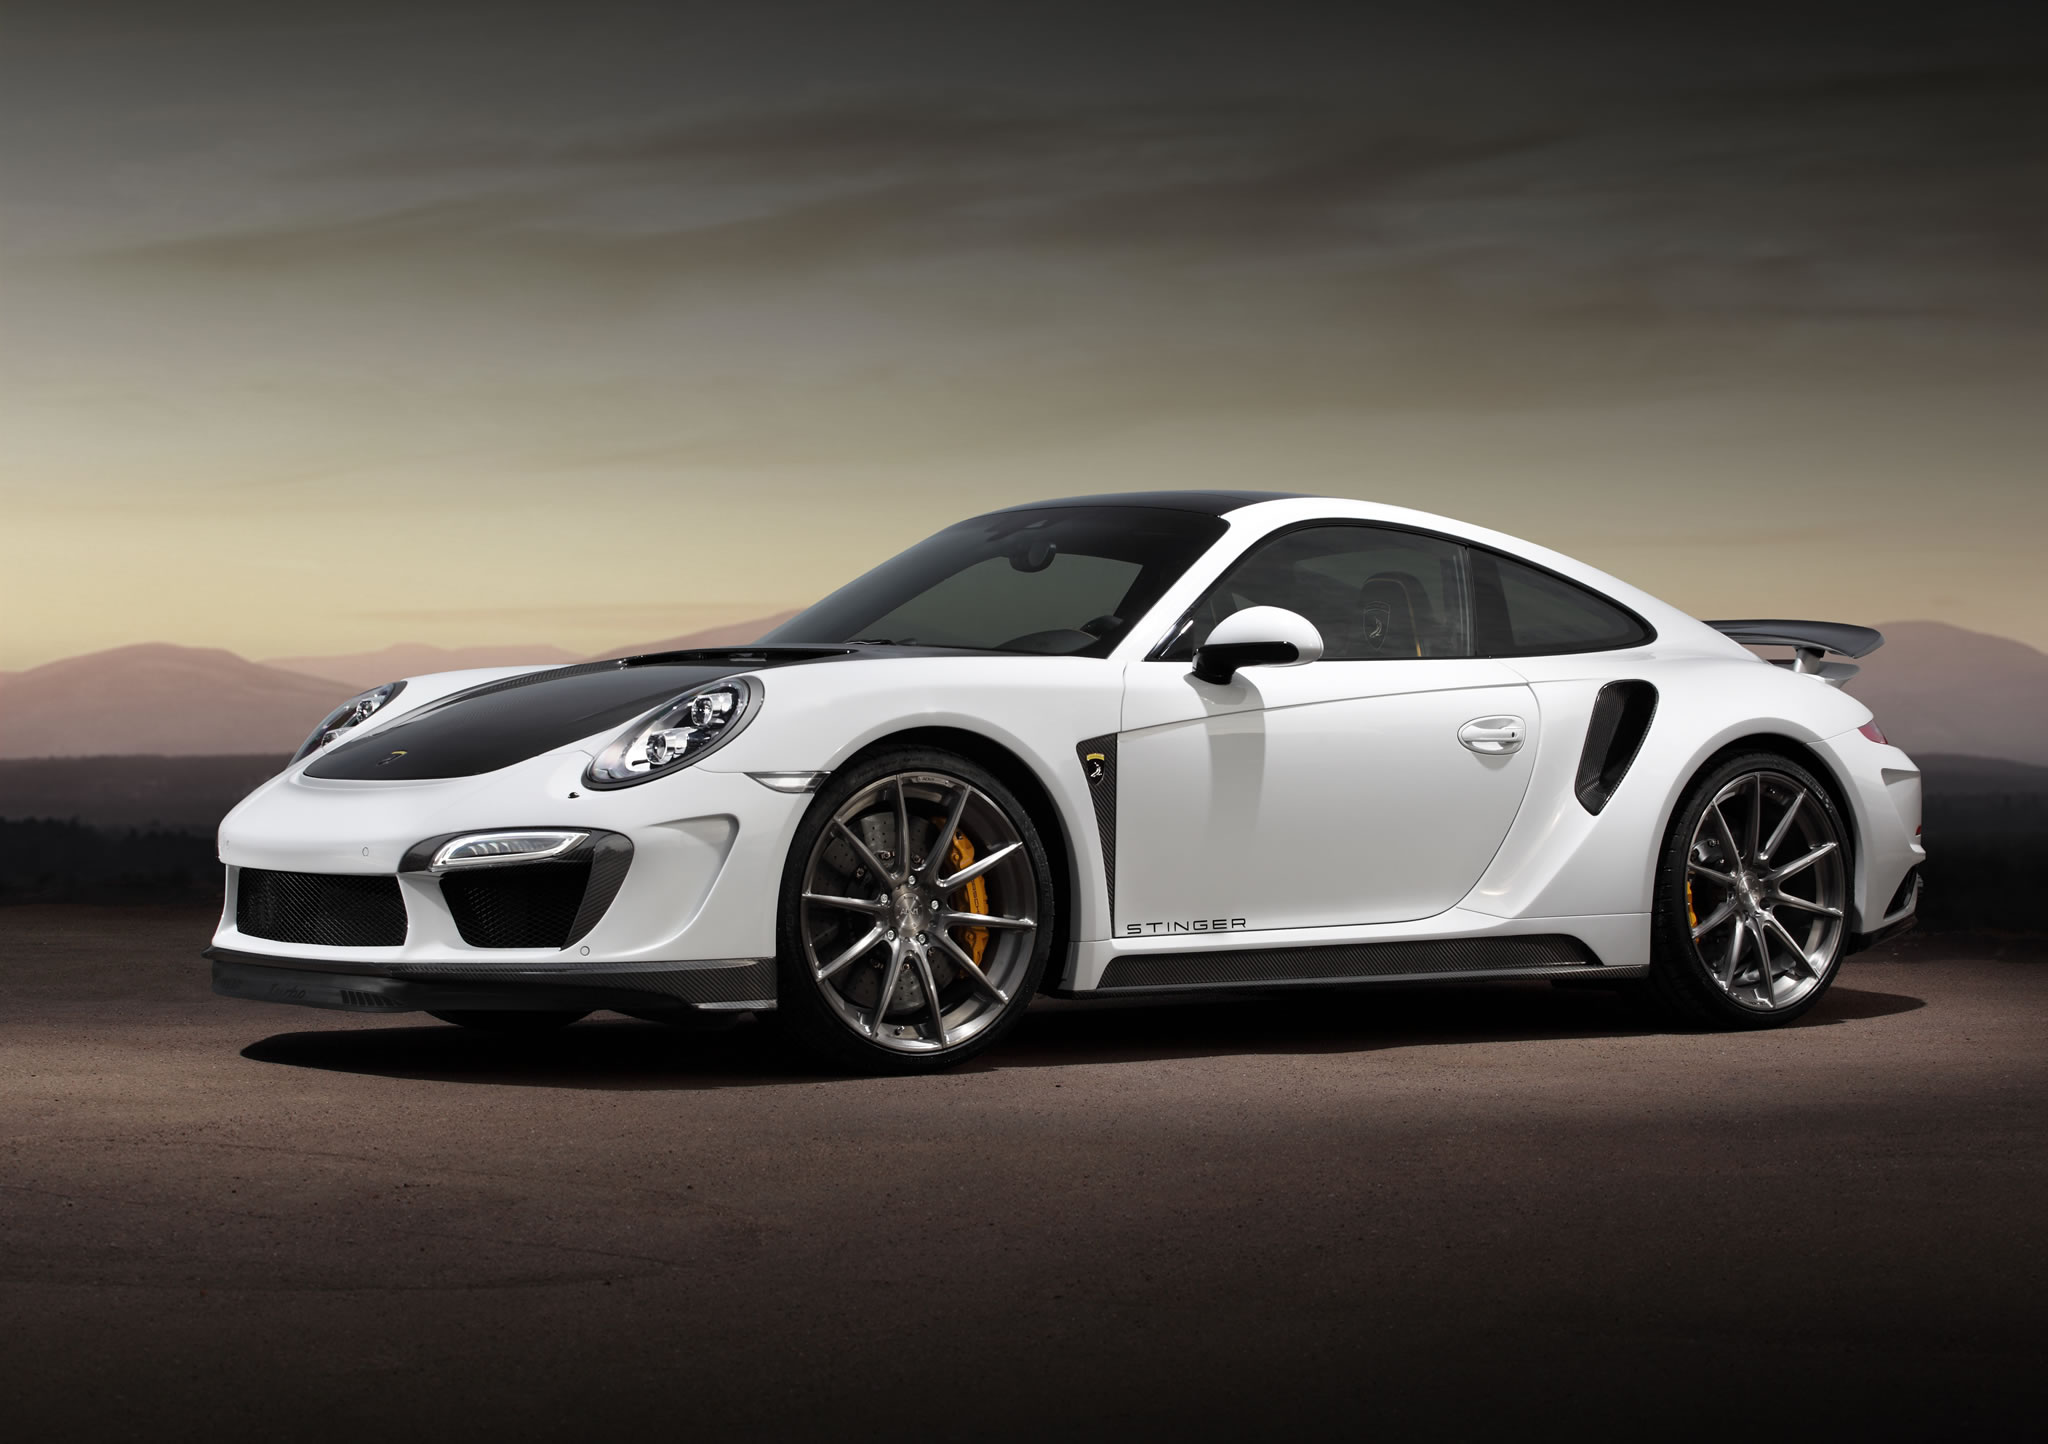 2015 Porsche 911 Turbo S Stinger Gtr By Topcar Front